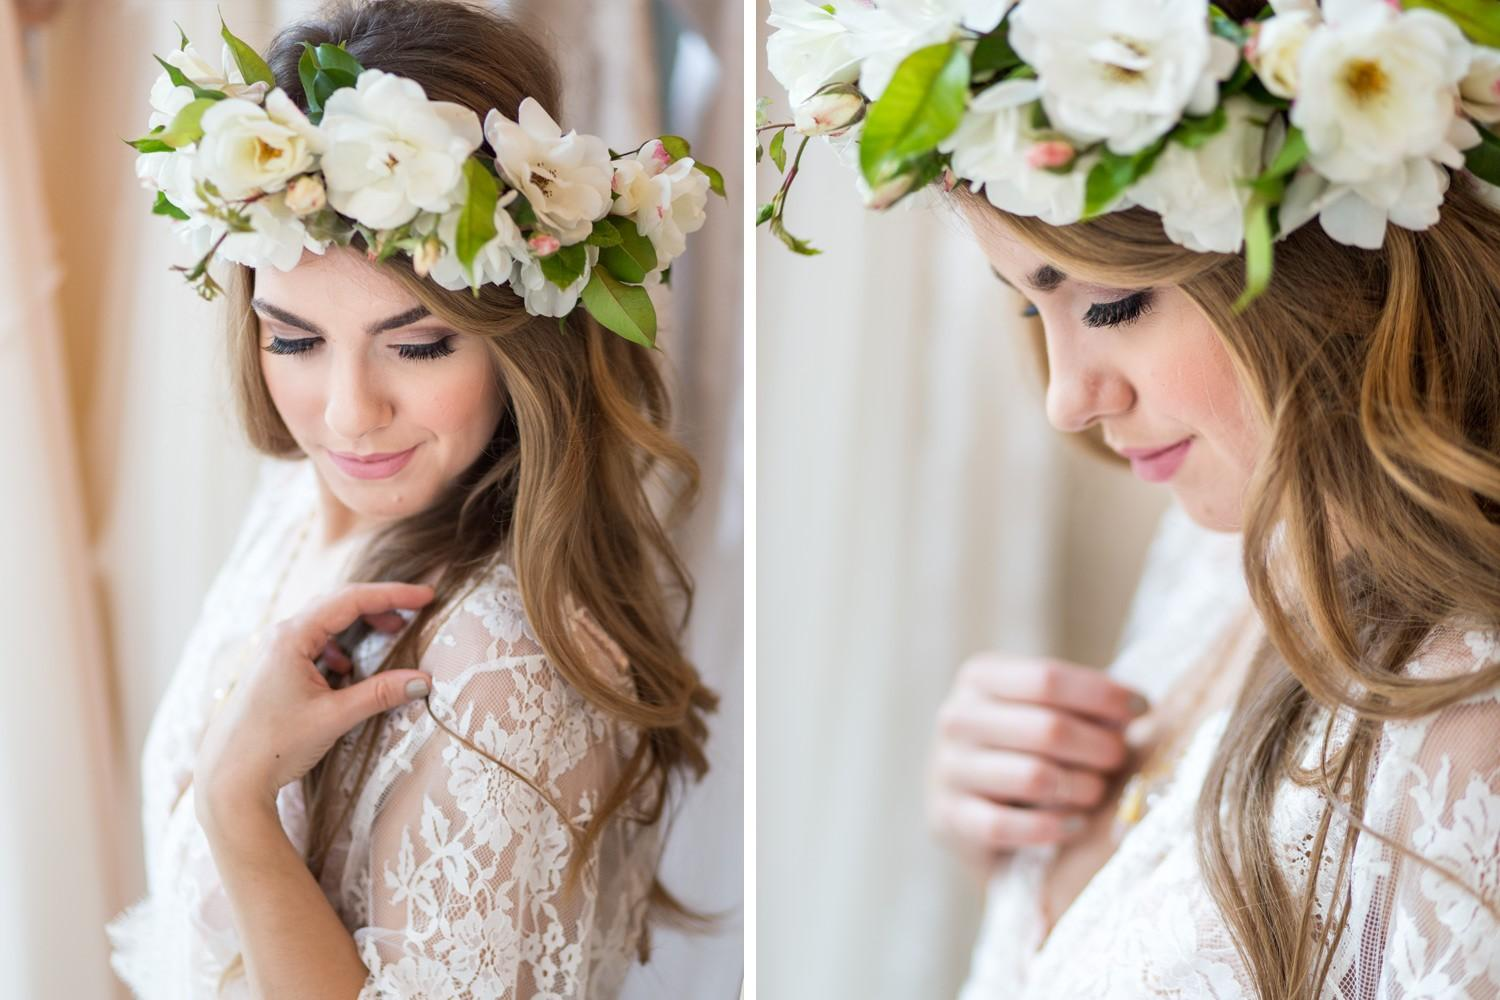 bridal boudoir session with floral crown